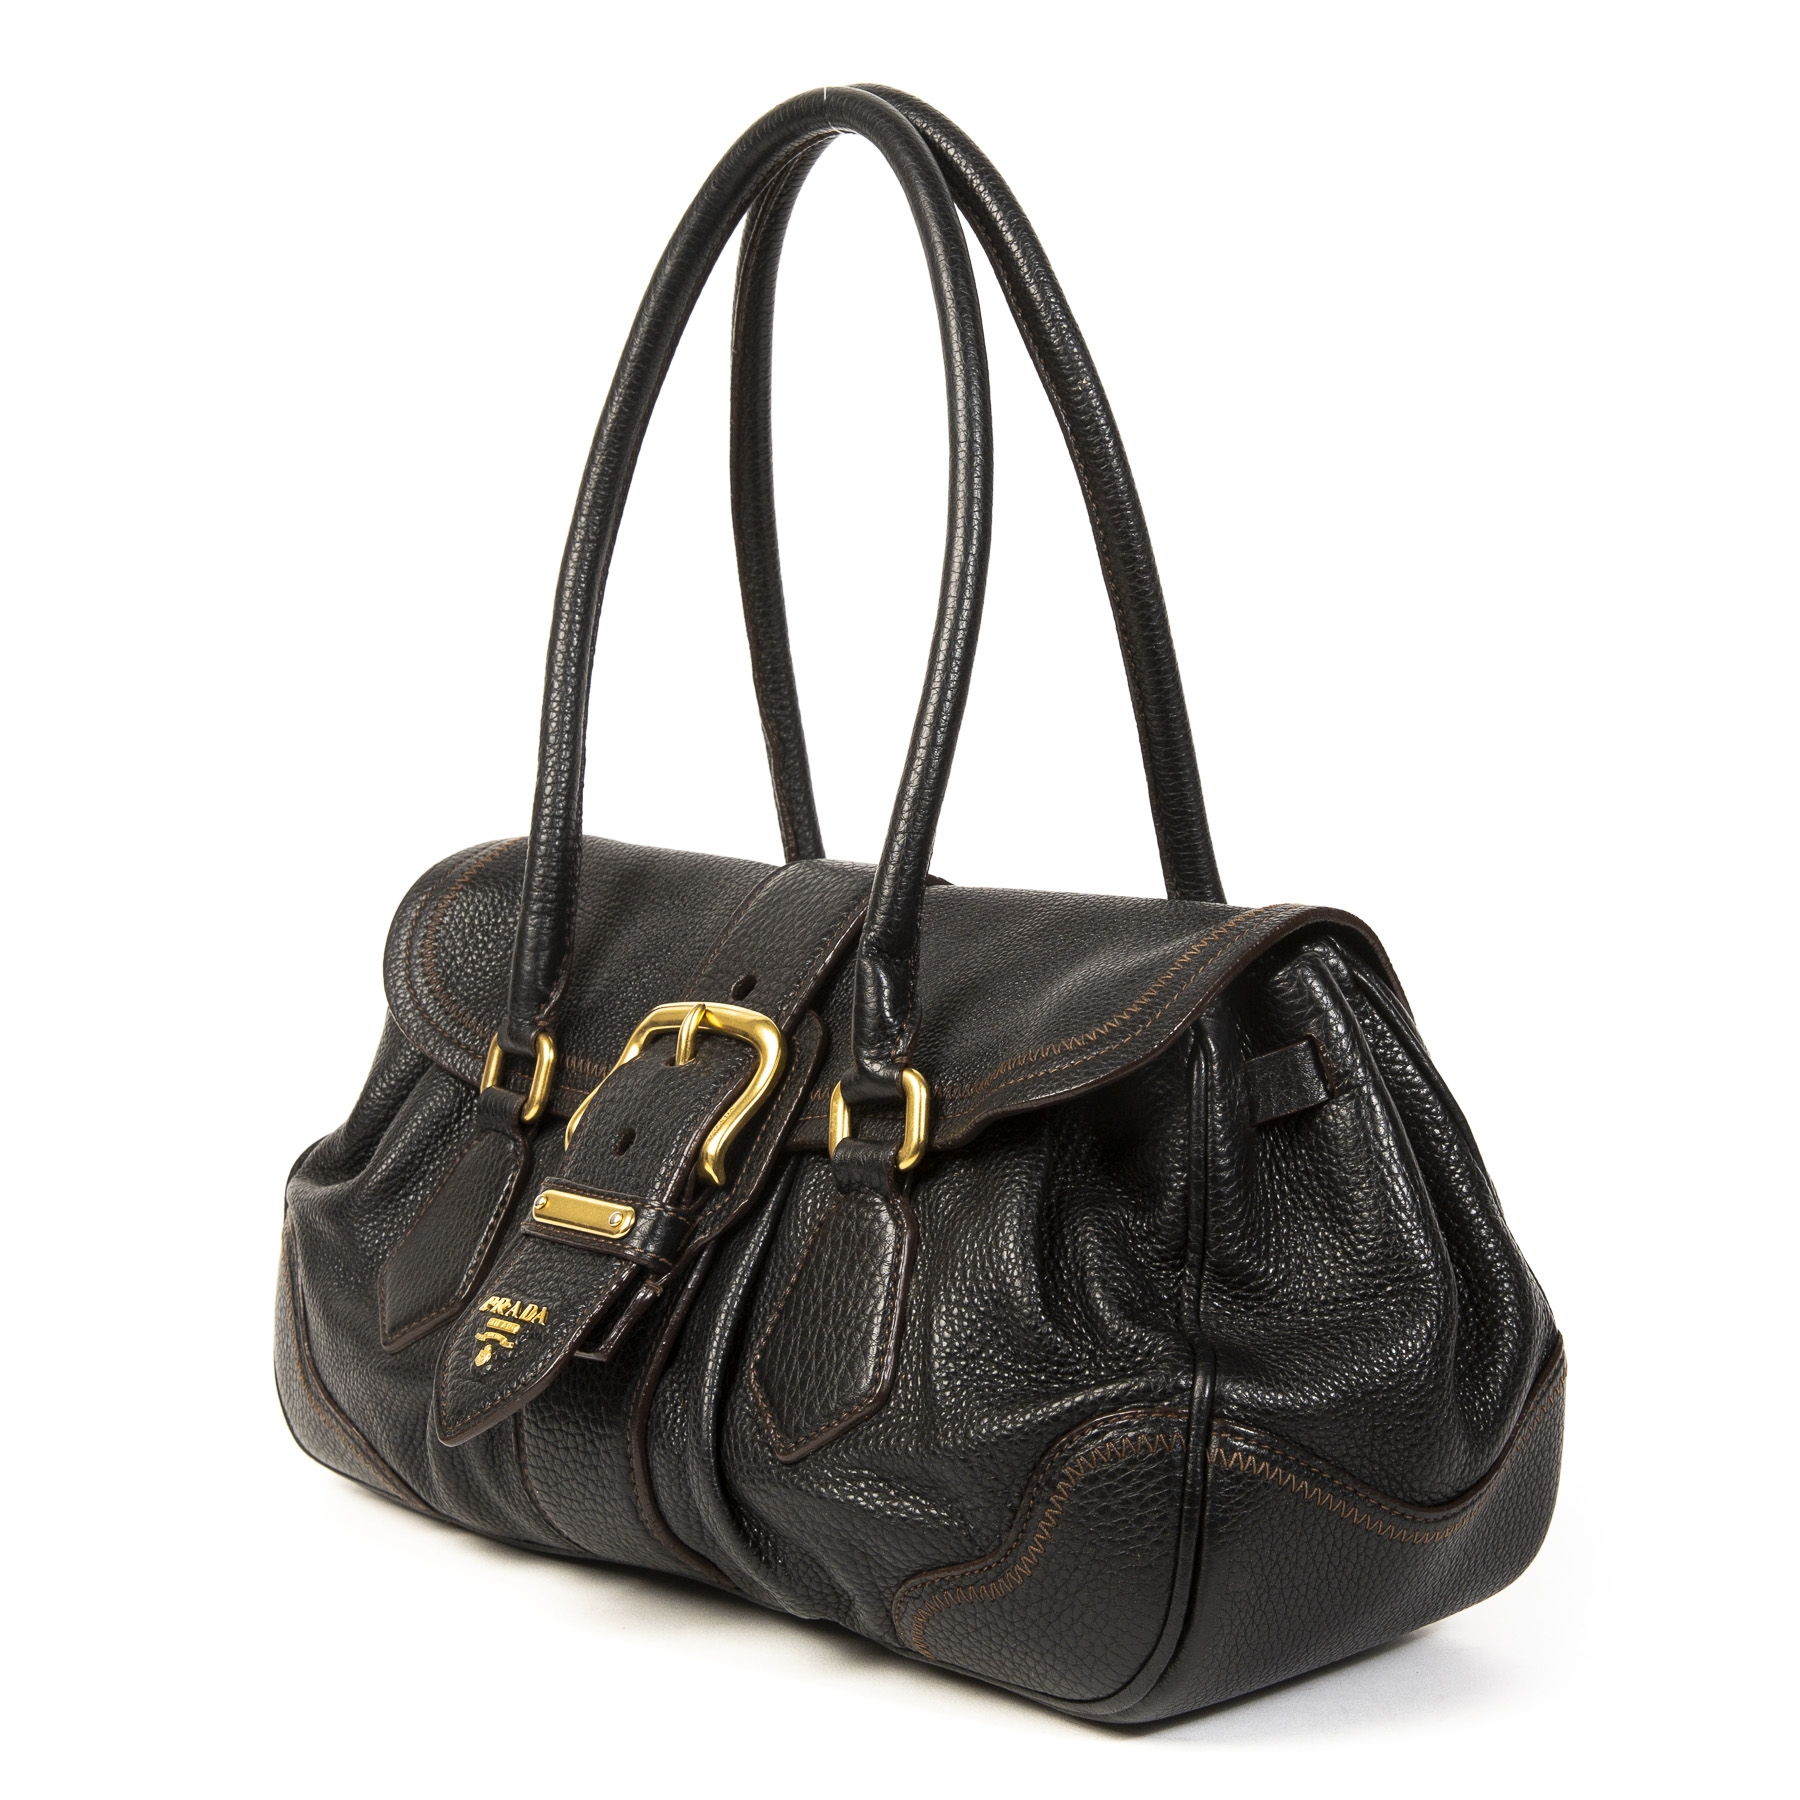 Authentic second-hand vintage Prada Black Gold Shouder Bag buy online webshop LabelLOV